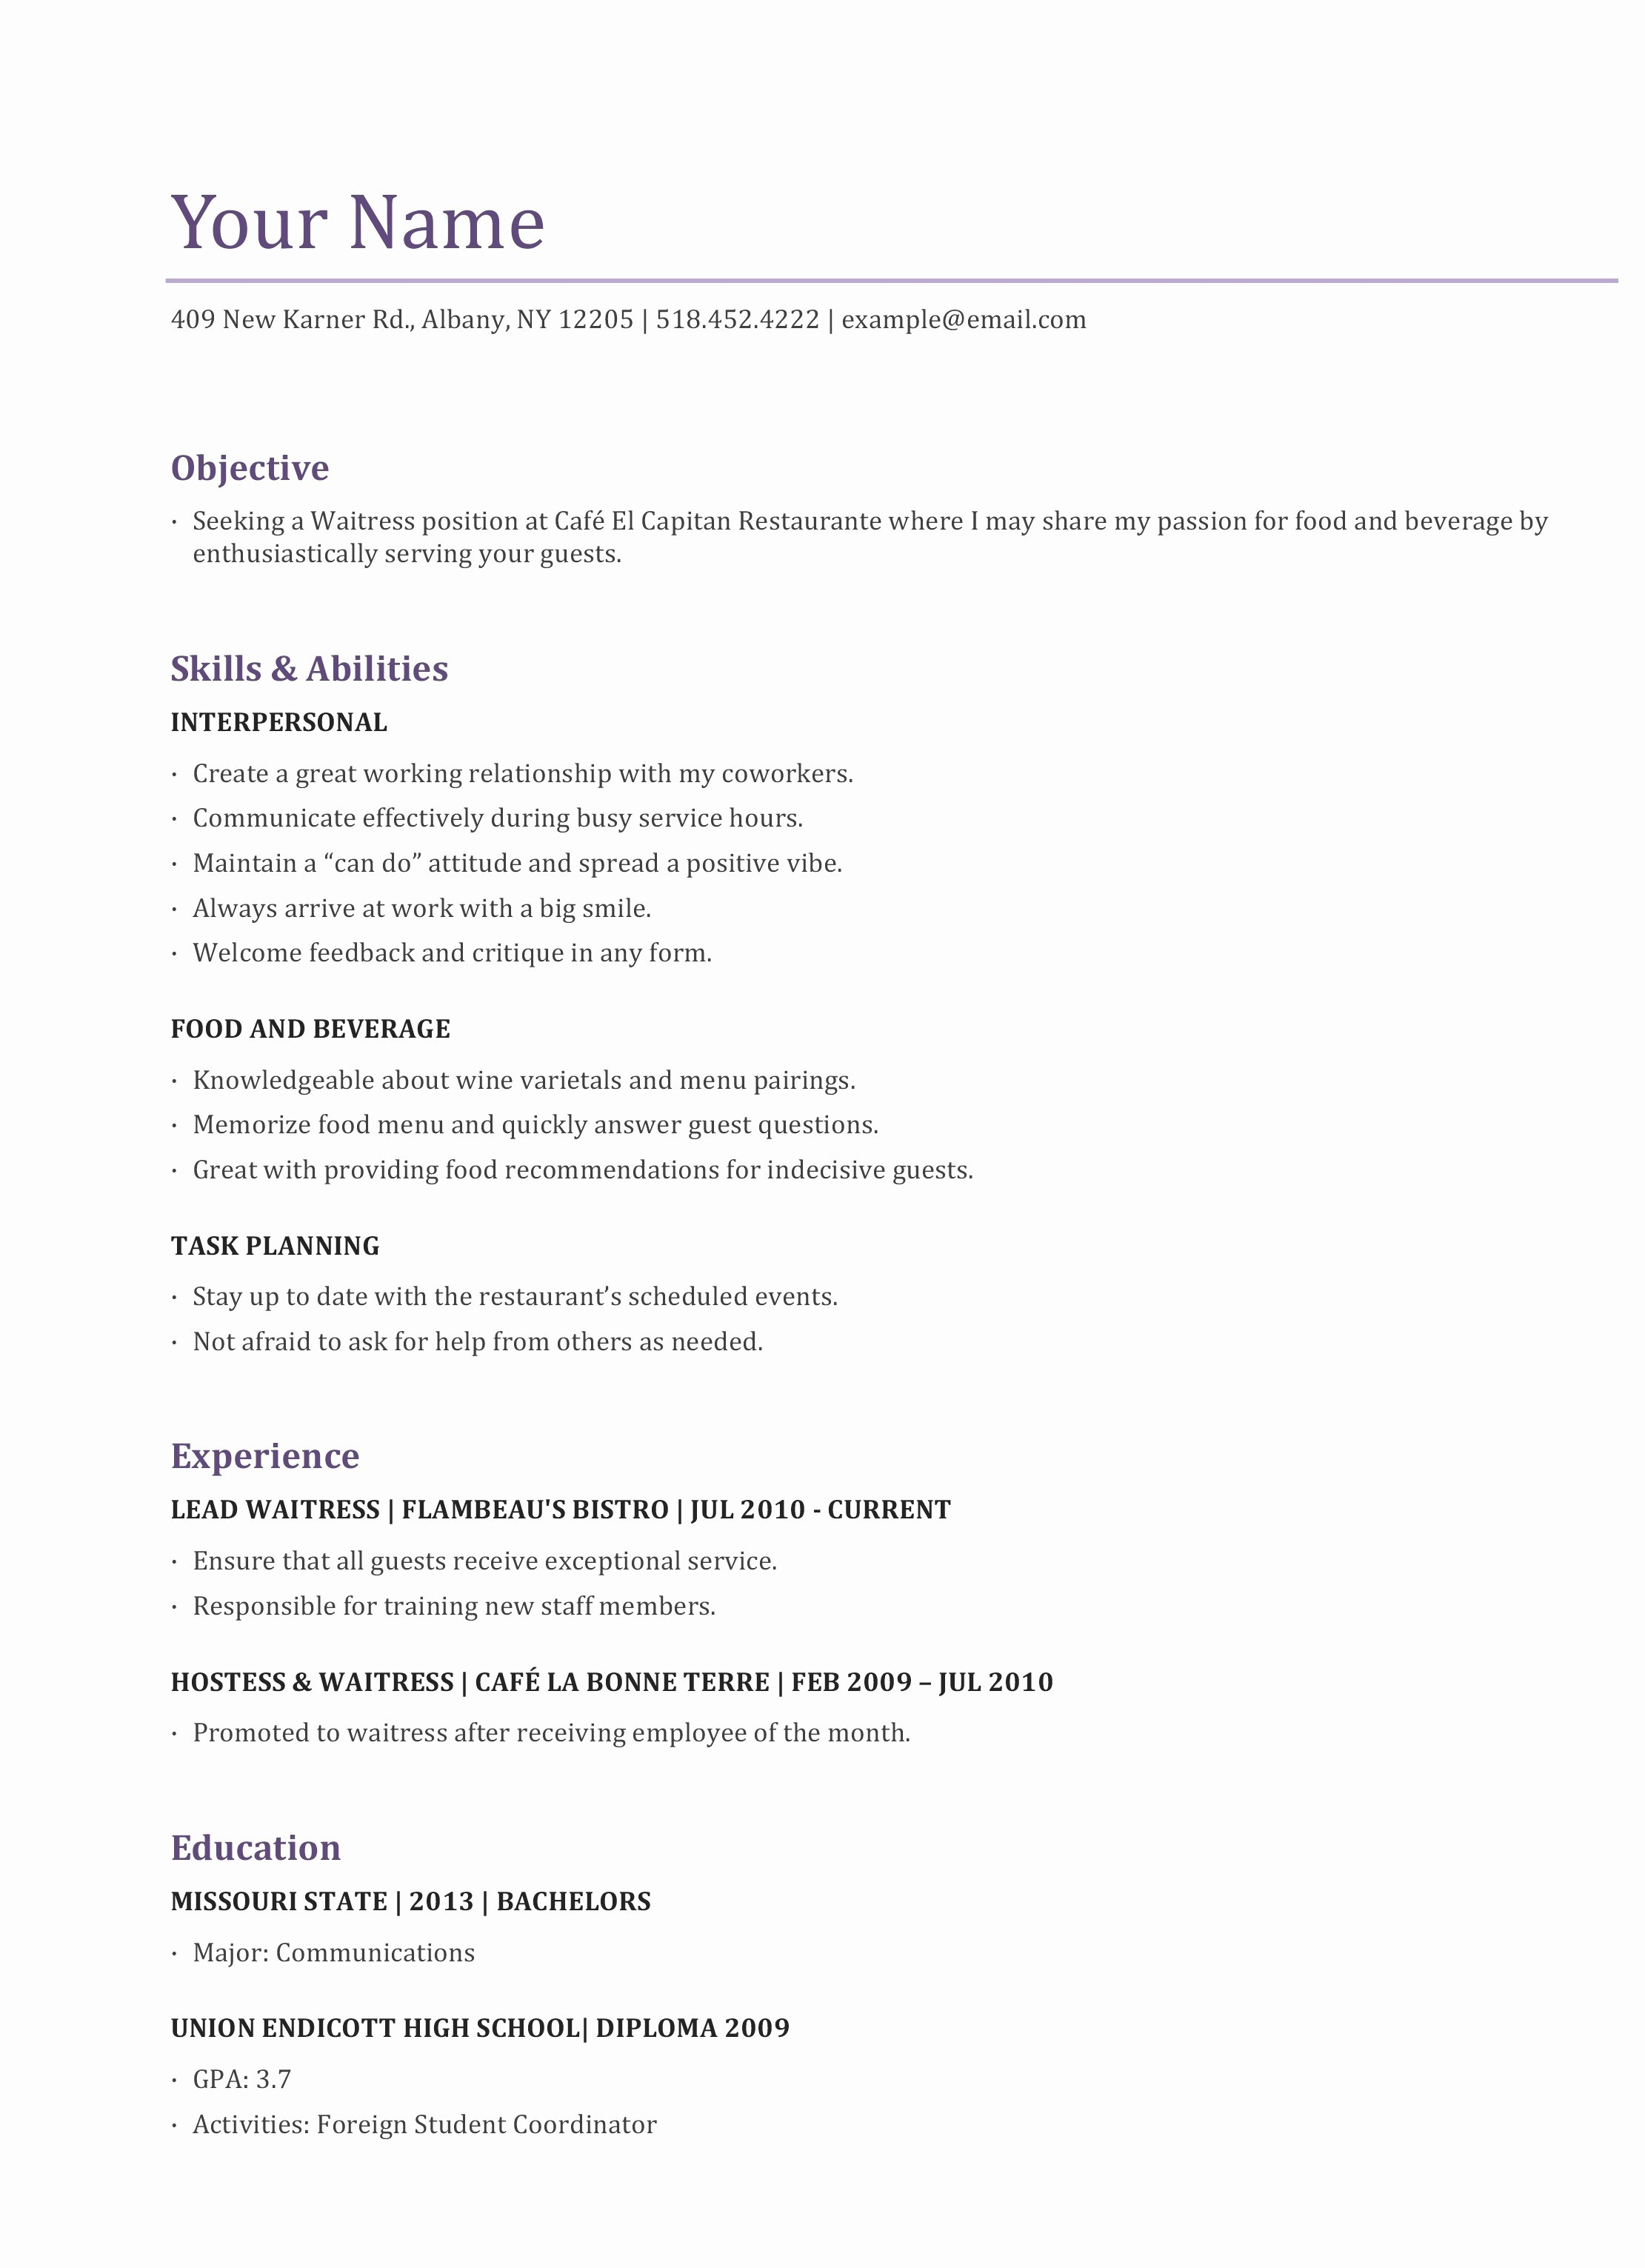 paralegal resume examples Collection-Paralegal Resume Sample New Lovely Research Skills Resume New Paralegal Resume 0d Wallpapers 43 21 13-f